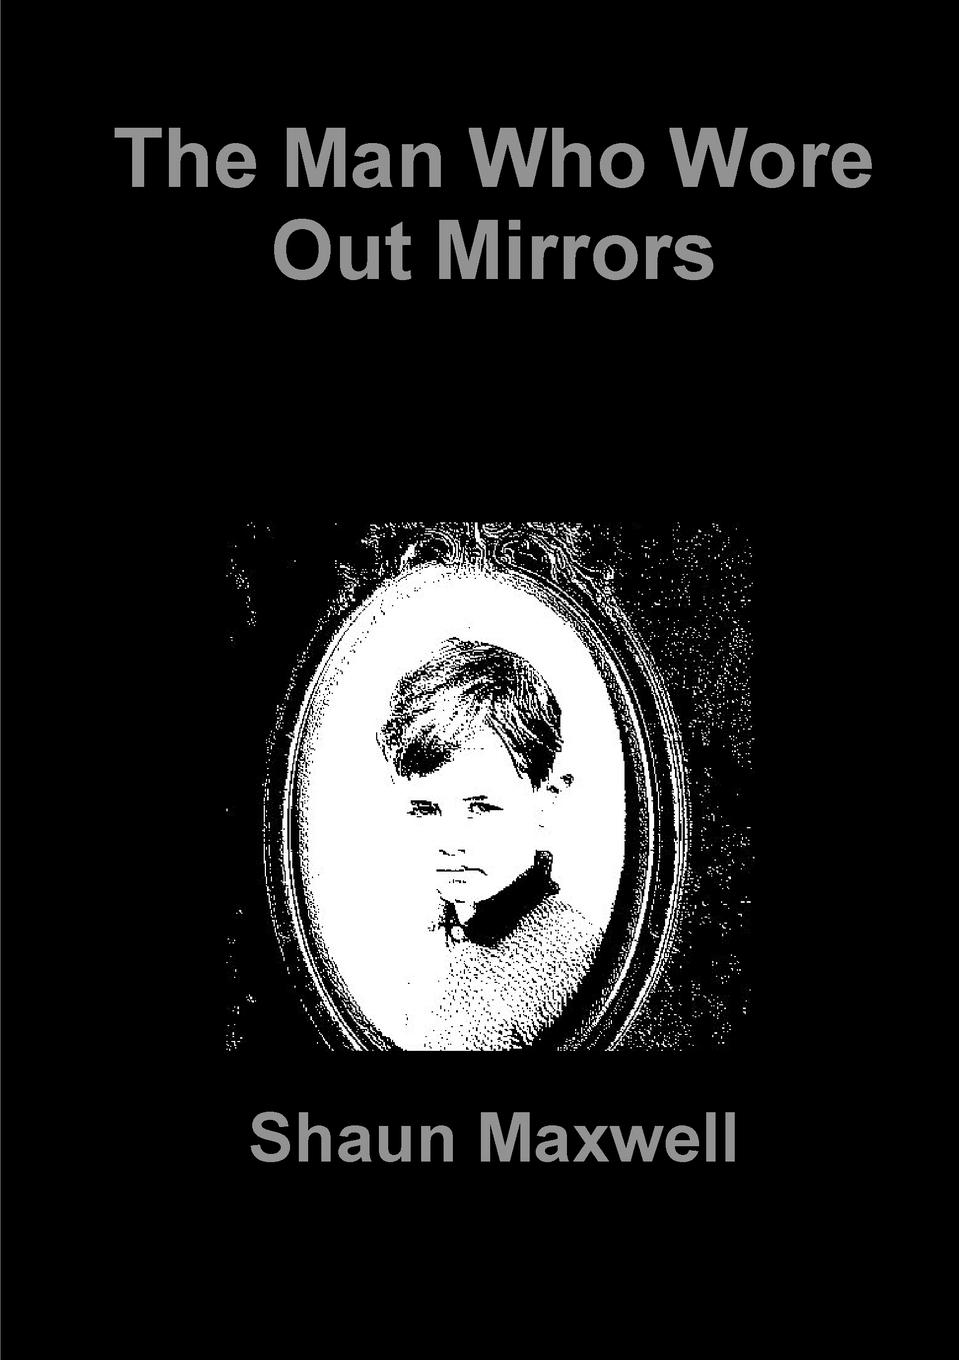 Shaun Maxwell The Man Who Wore Out Mirrors